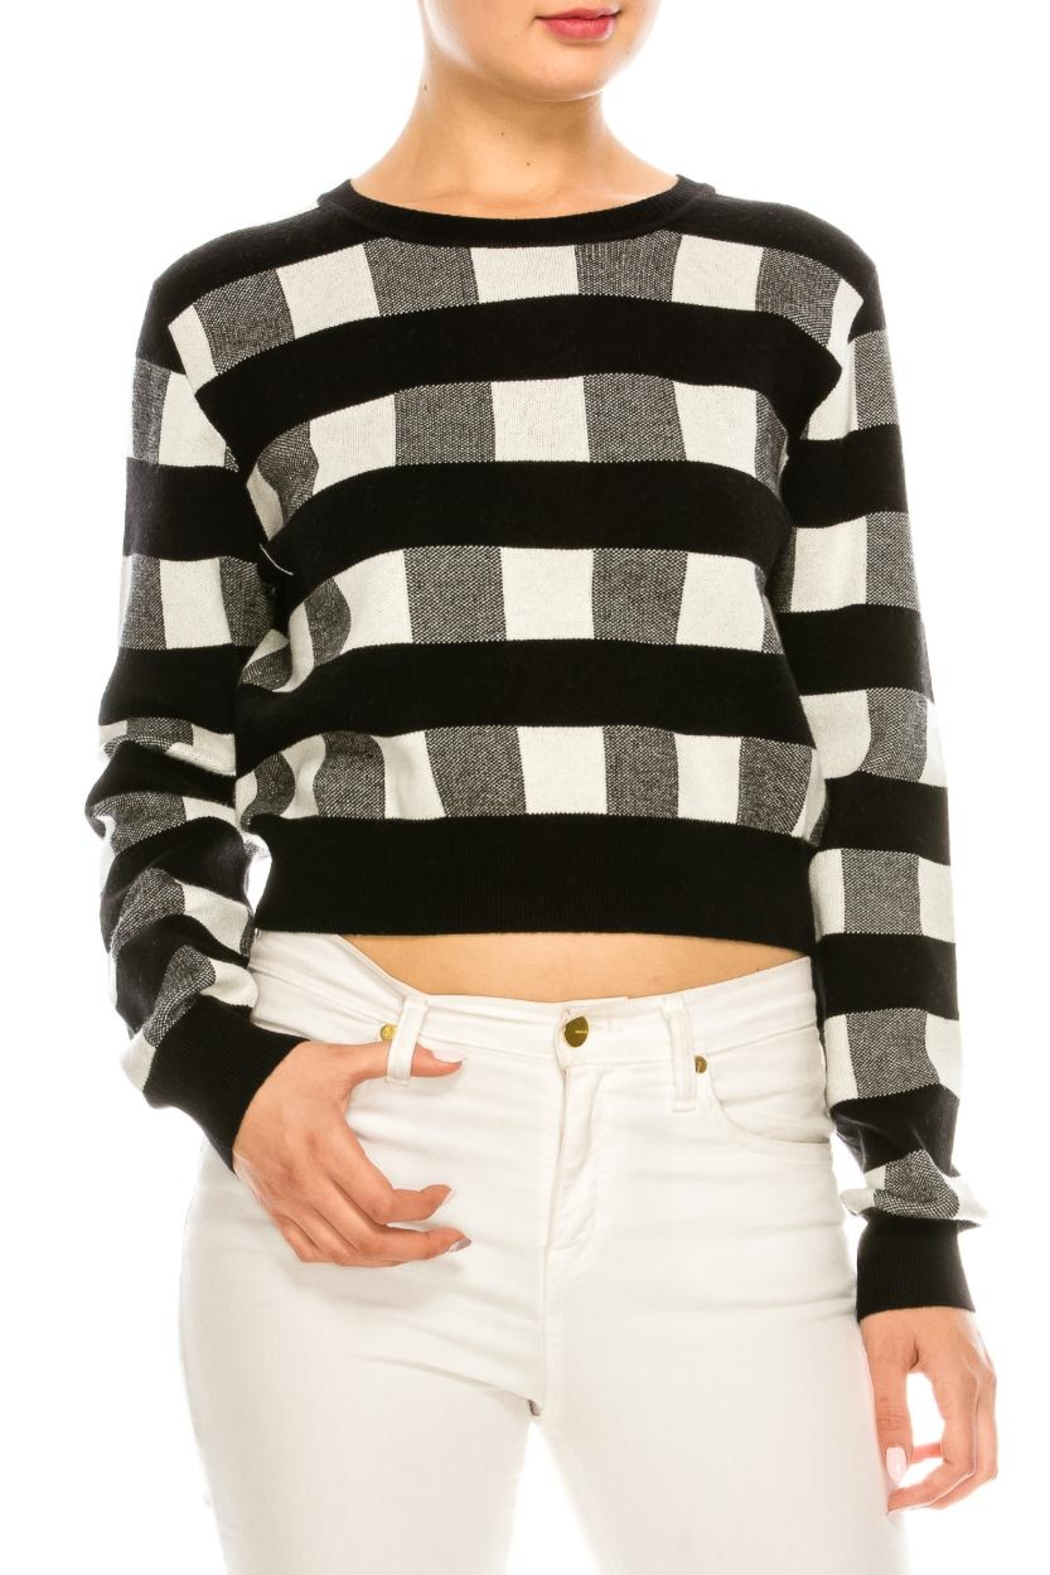 bff4804a06a6e Lush Black-White Gingham Sweater from New York by Dor L Dor — Shoptiques